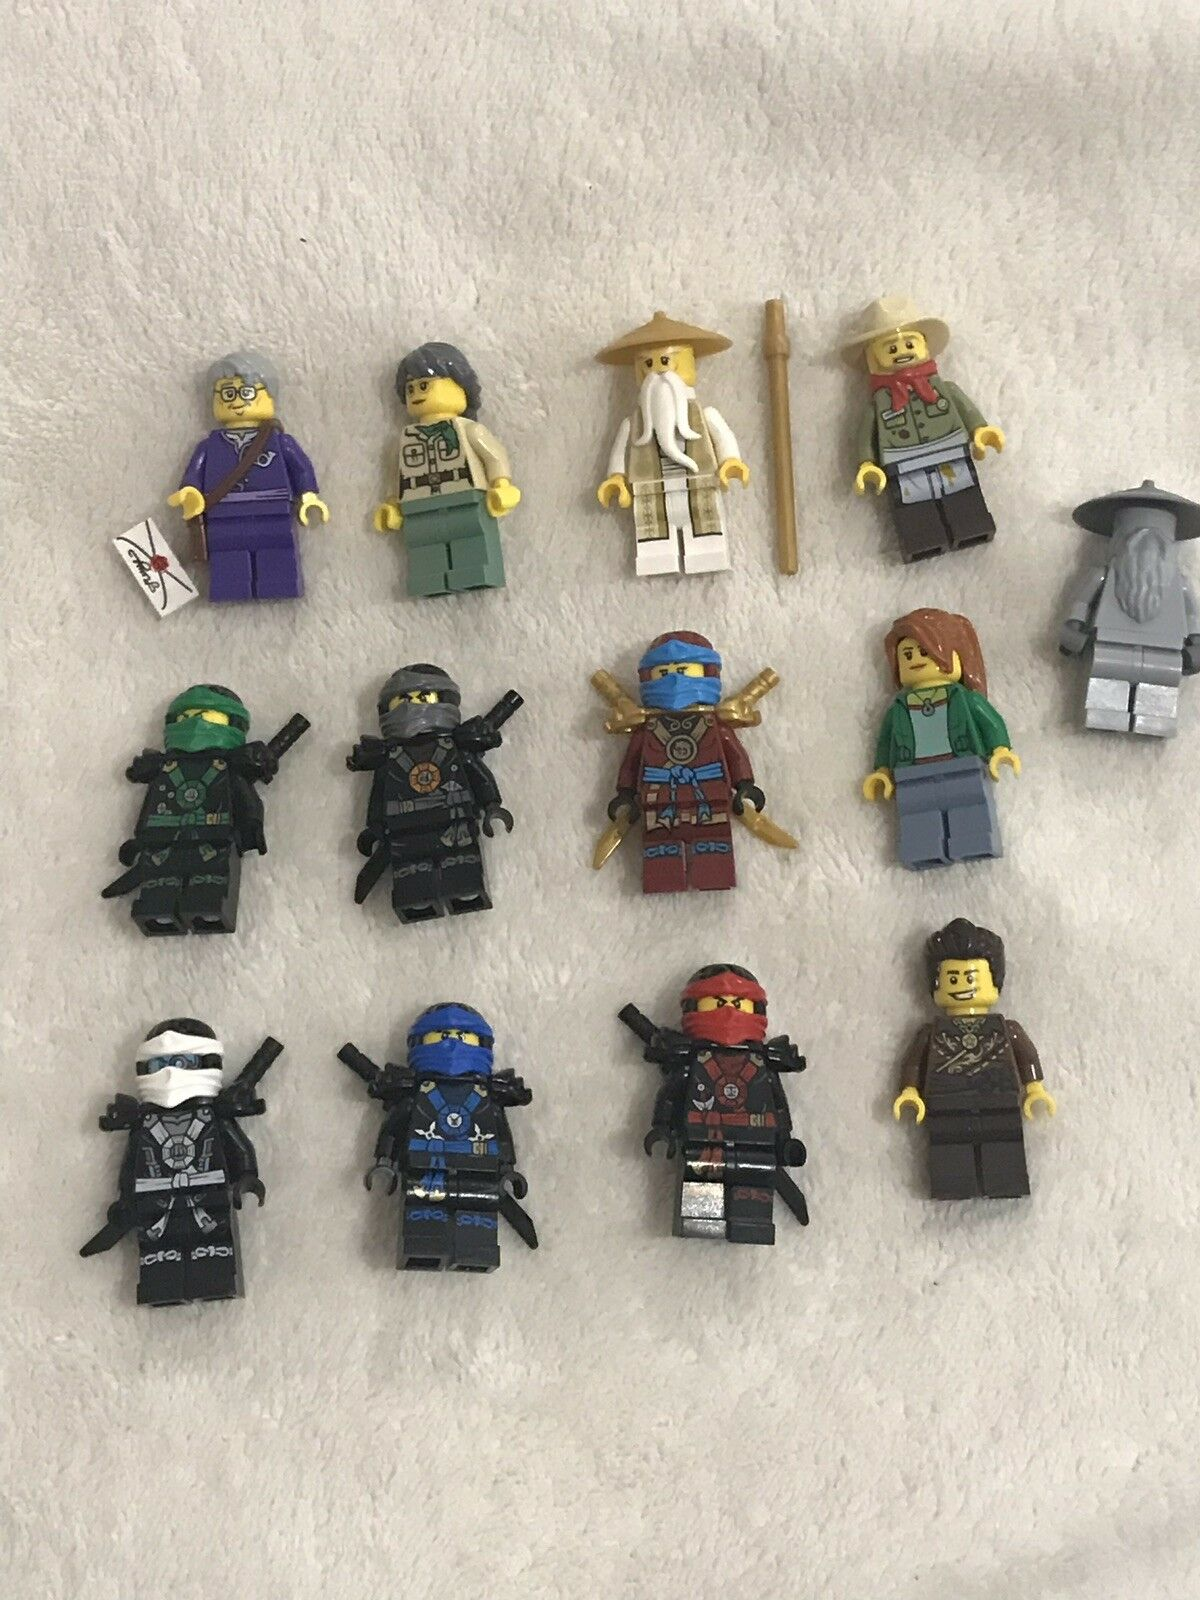 Genuine Ninjago Lego mini figures From From From Set 4297b2